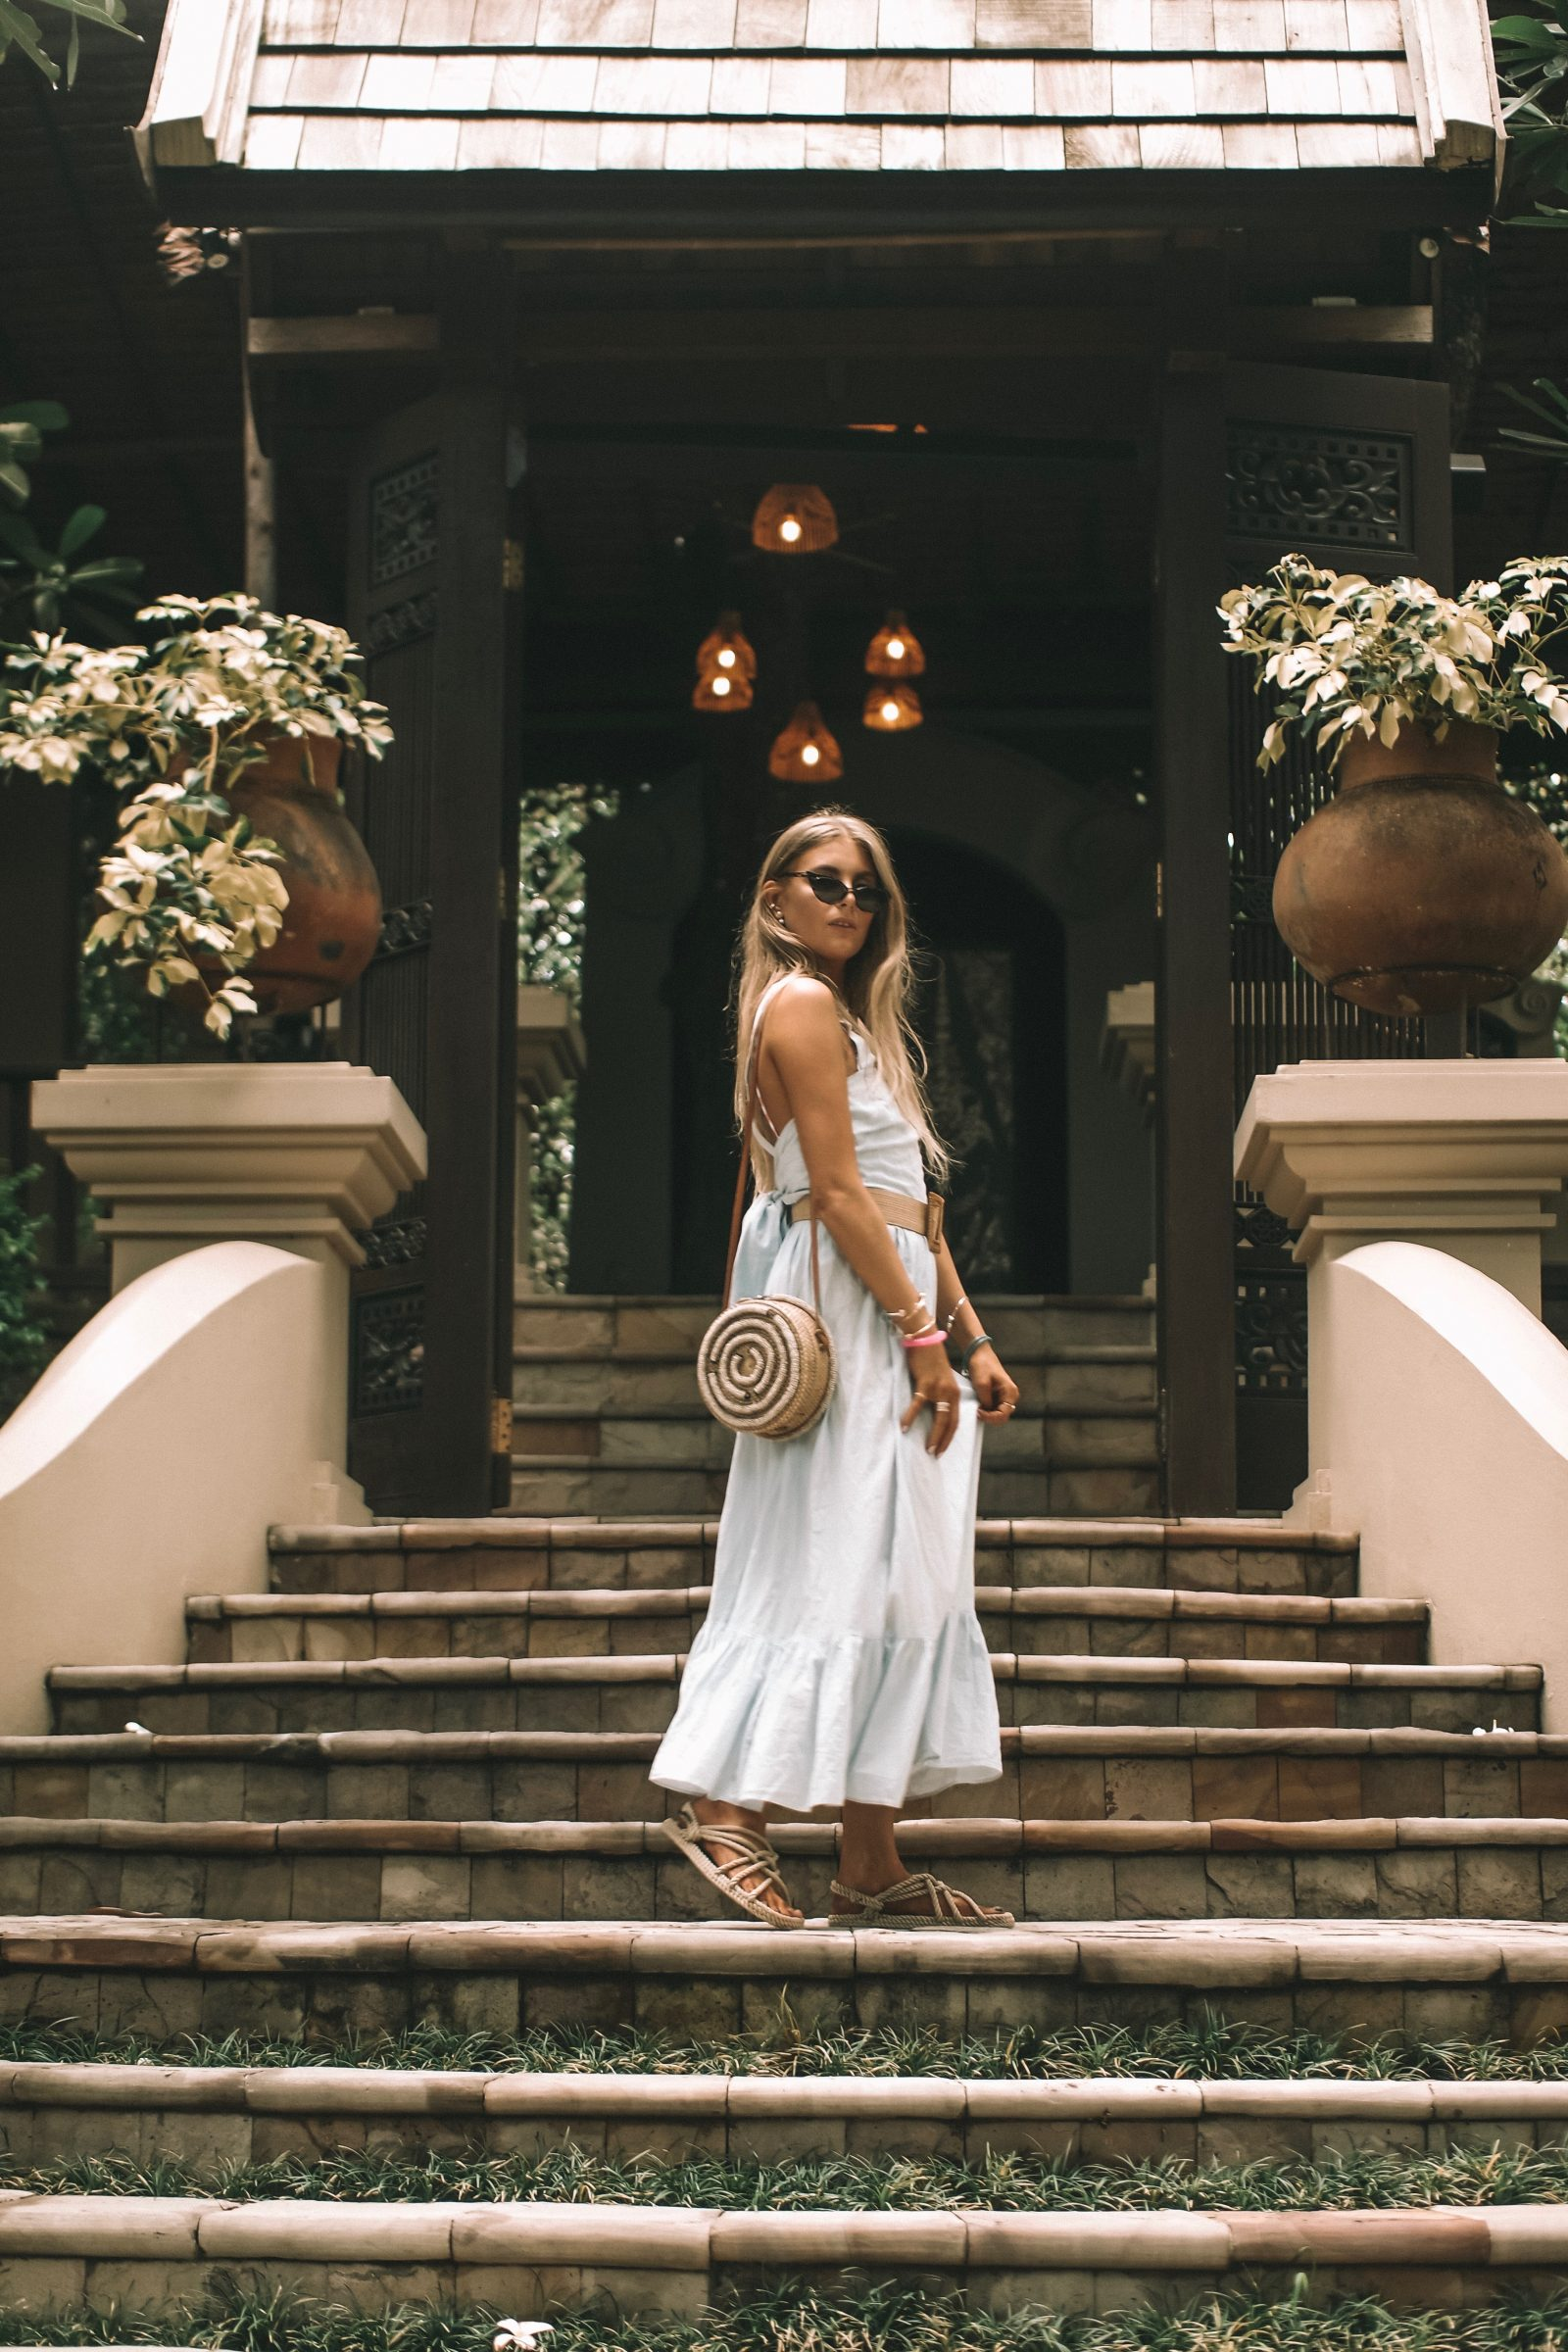 Thailand Outift Diaries - HM Blue Maxi Dress - Chiang Mai Outfit Diaries